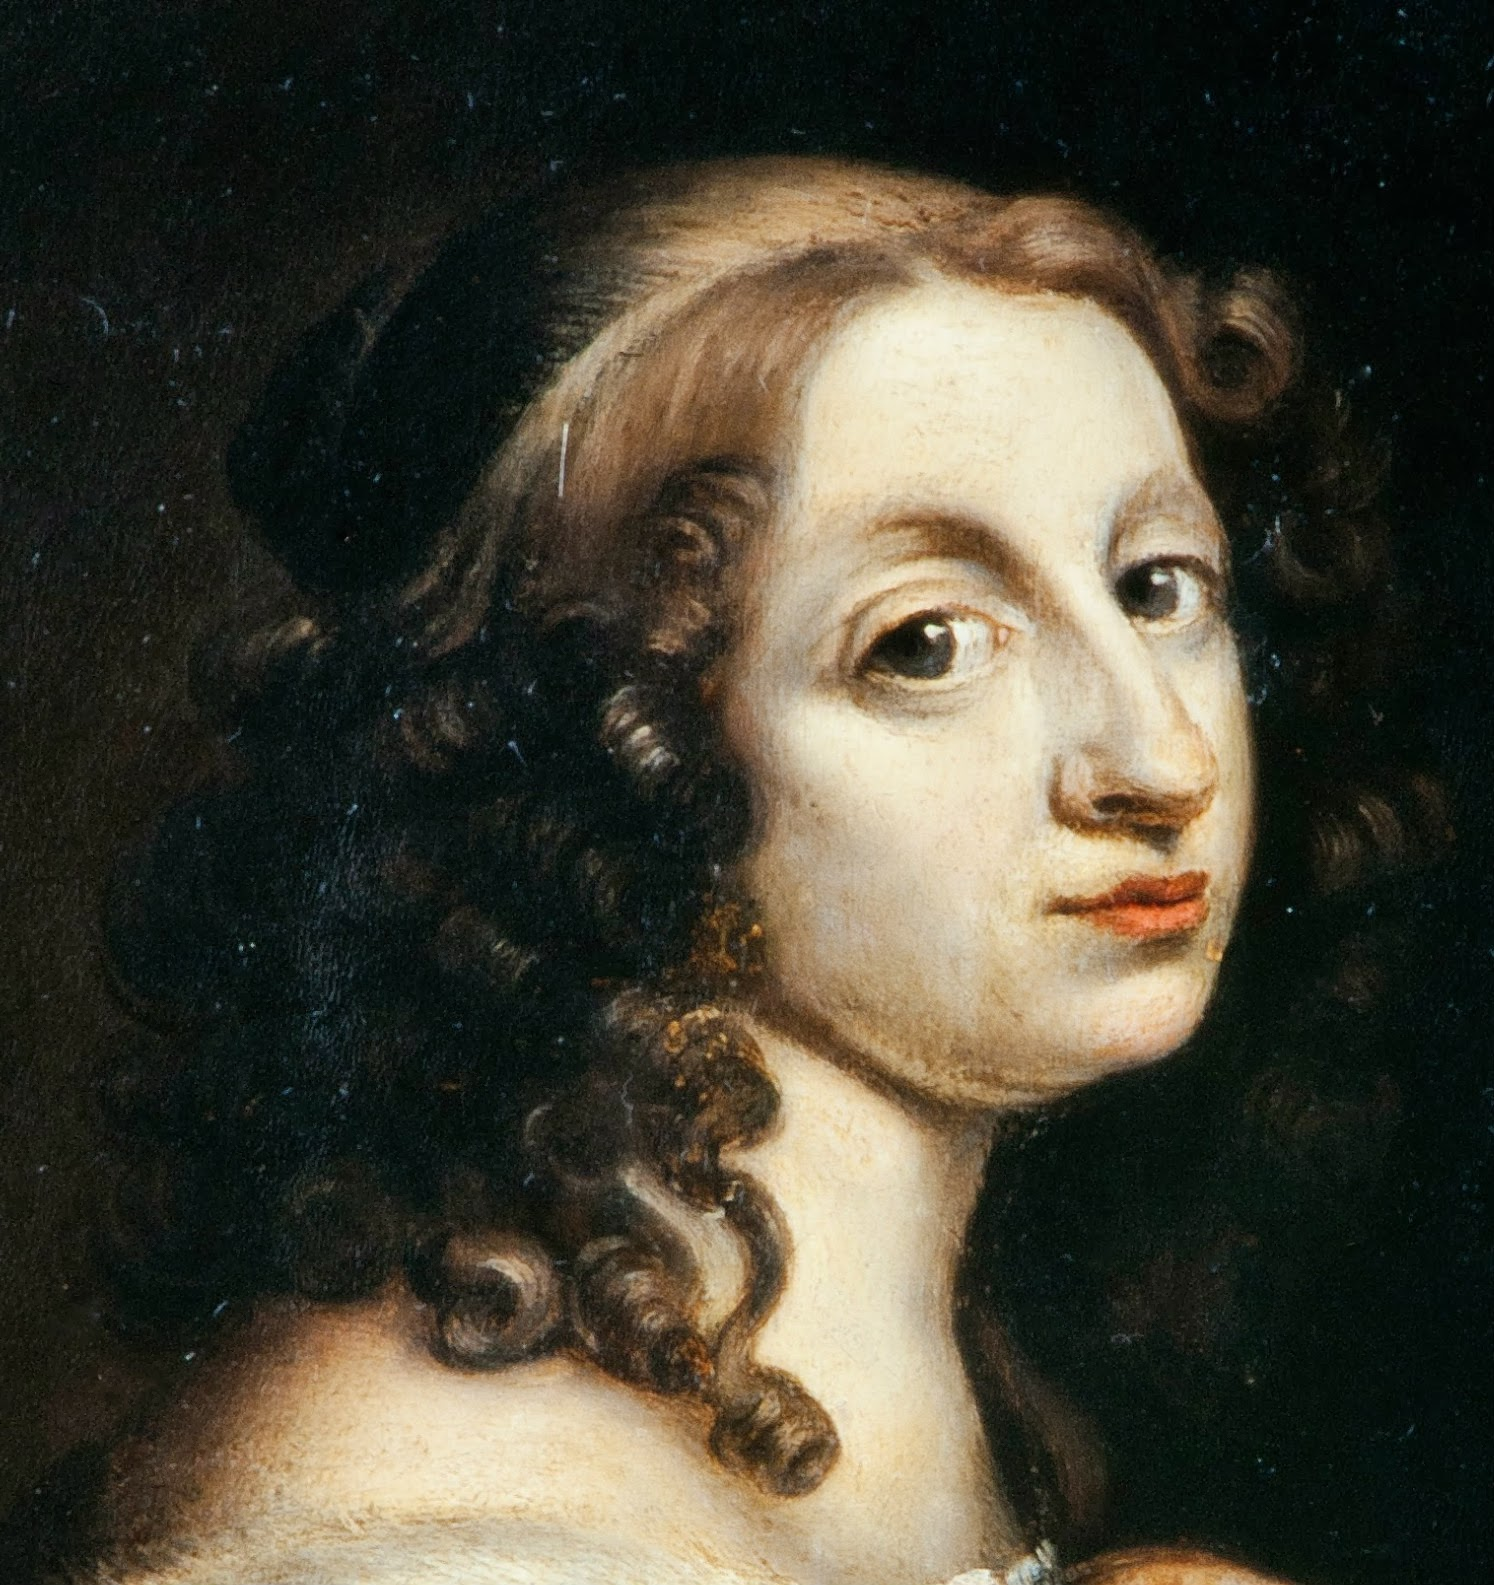 madame isis toilette a beautiful visage 17th century female beauty detail from a portrait of kristina queen of sweden by david beck ca 1650